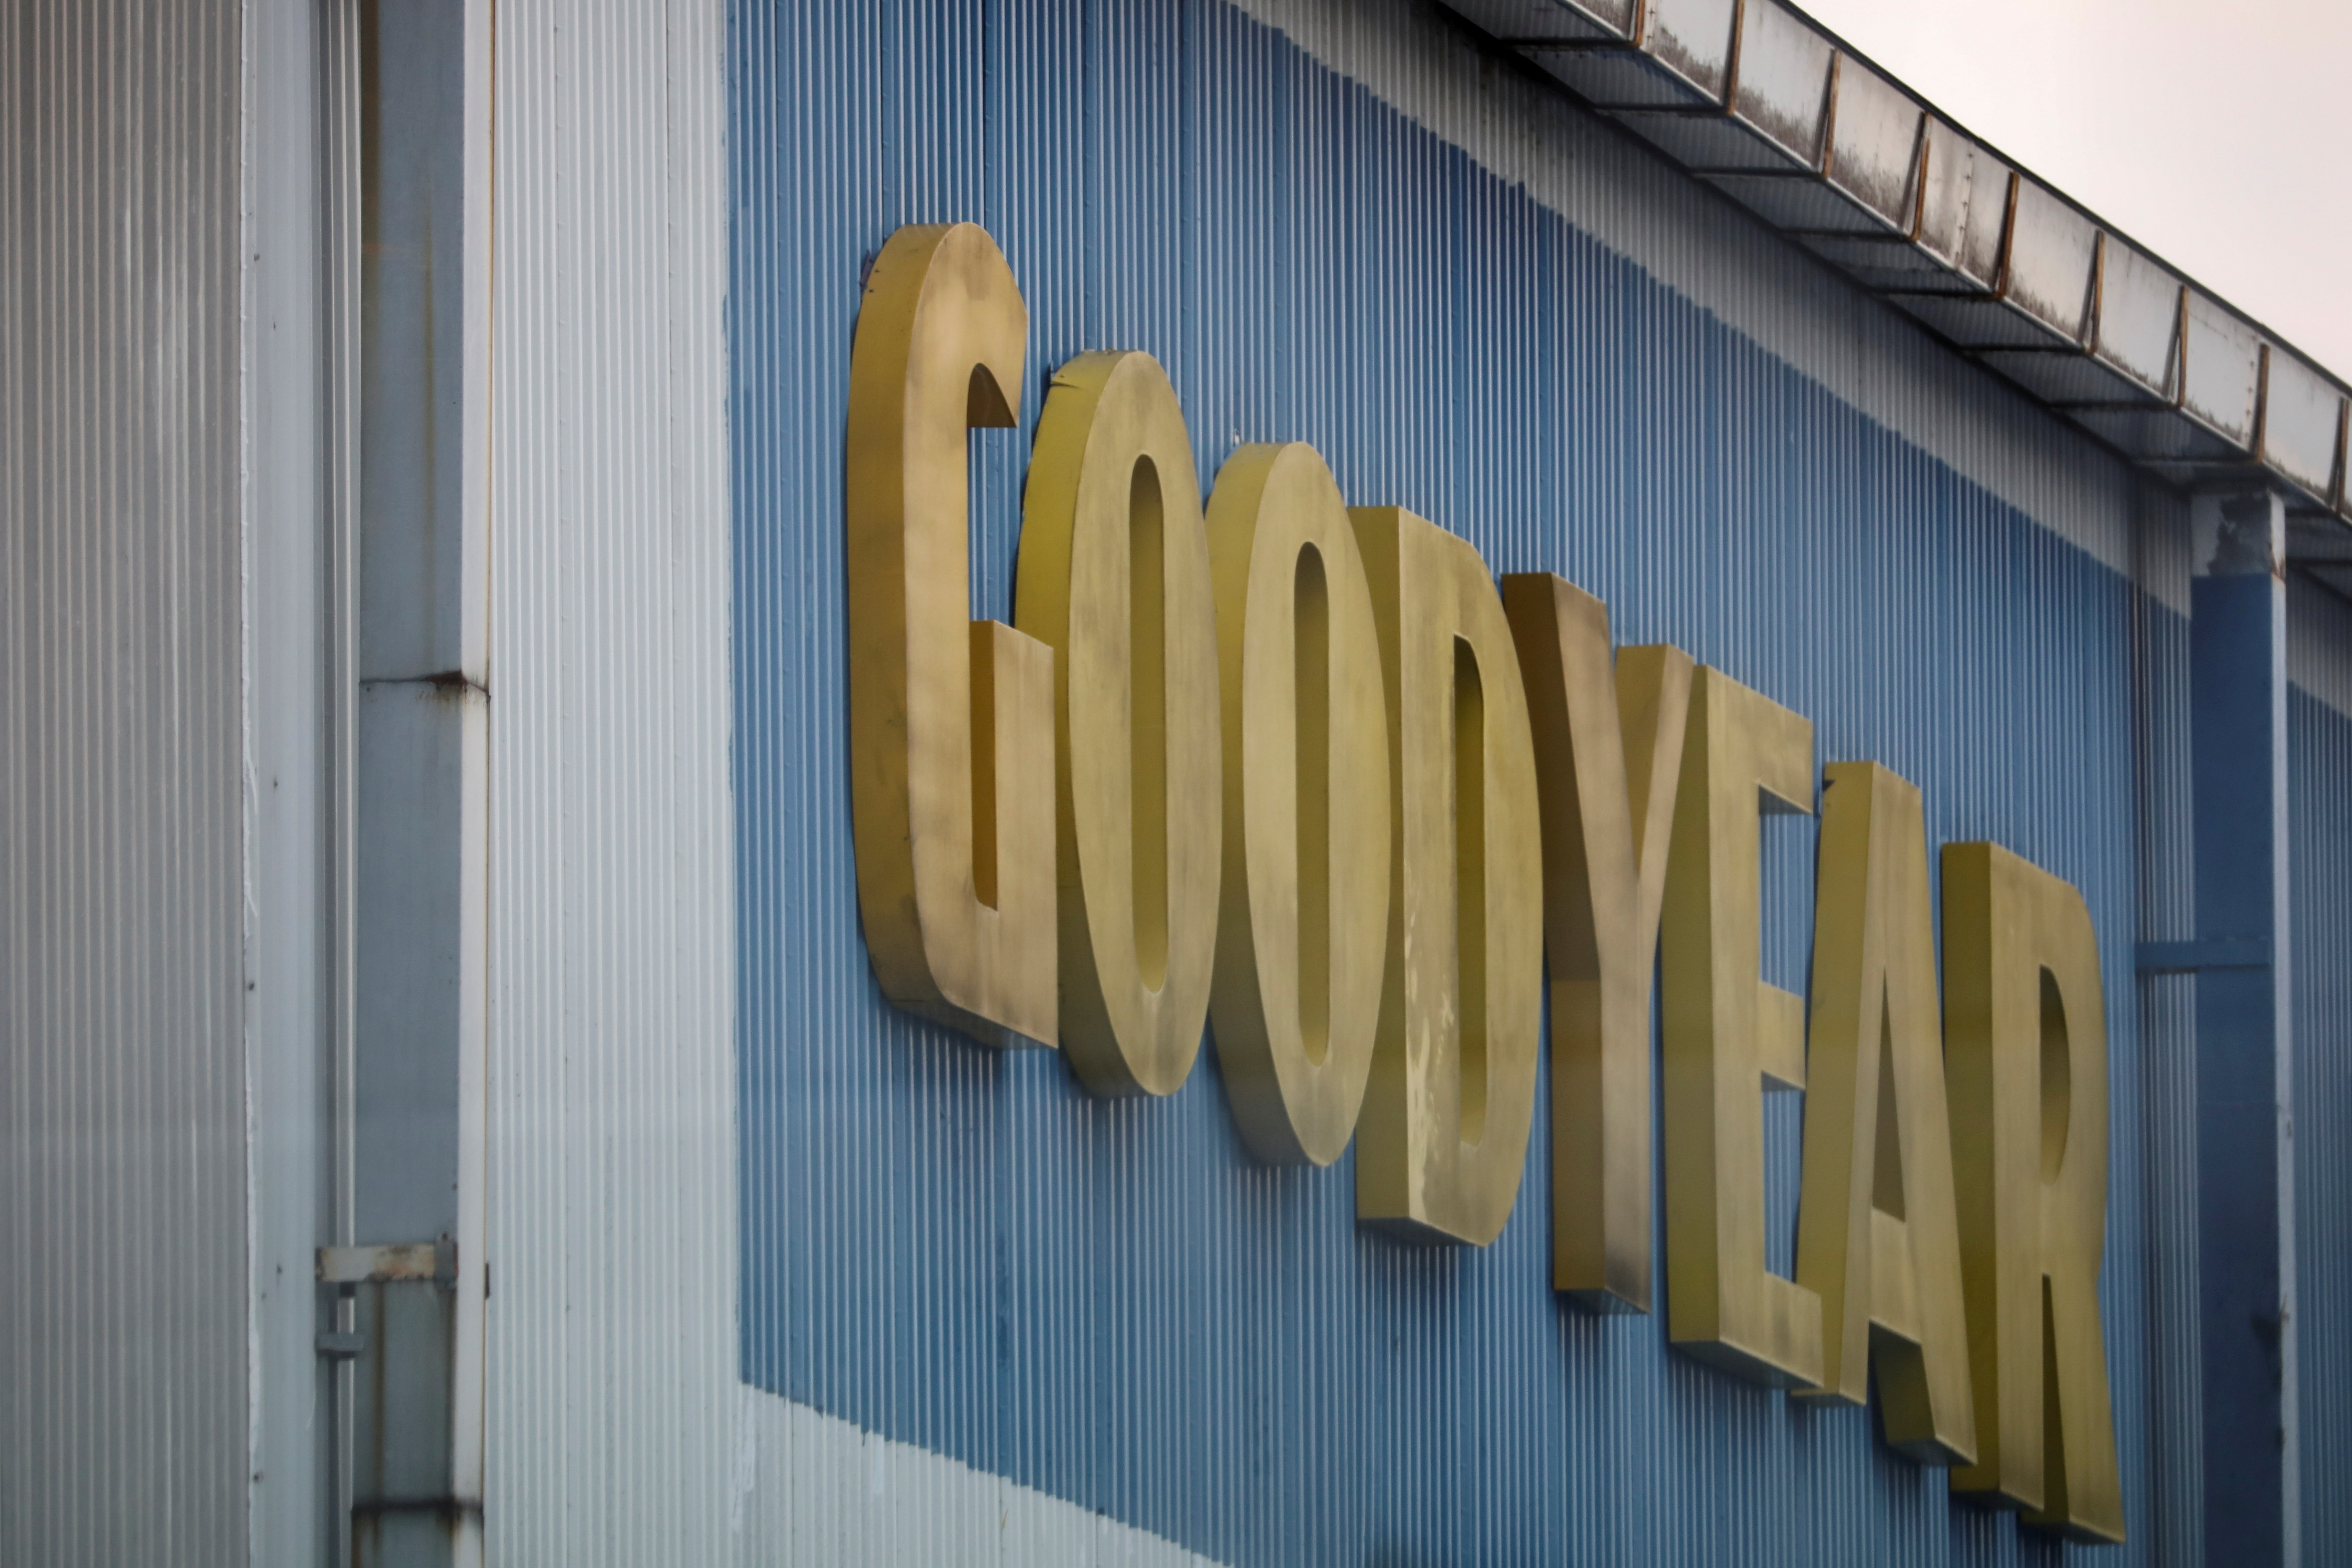 A logo of Goodyear is pictured at it's factory in Shah Alam, Malaysia May 6, 2021. Picture taken May 6, 2021. REUTERS/Lim Huey Teng/File Photo